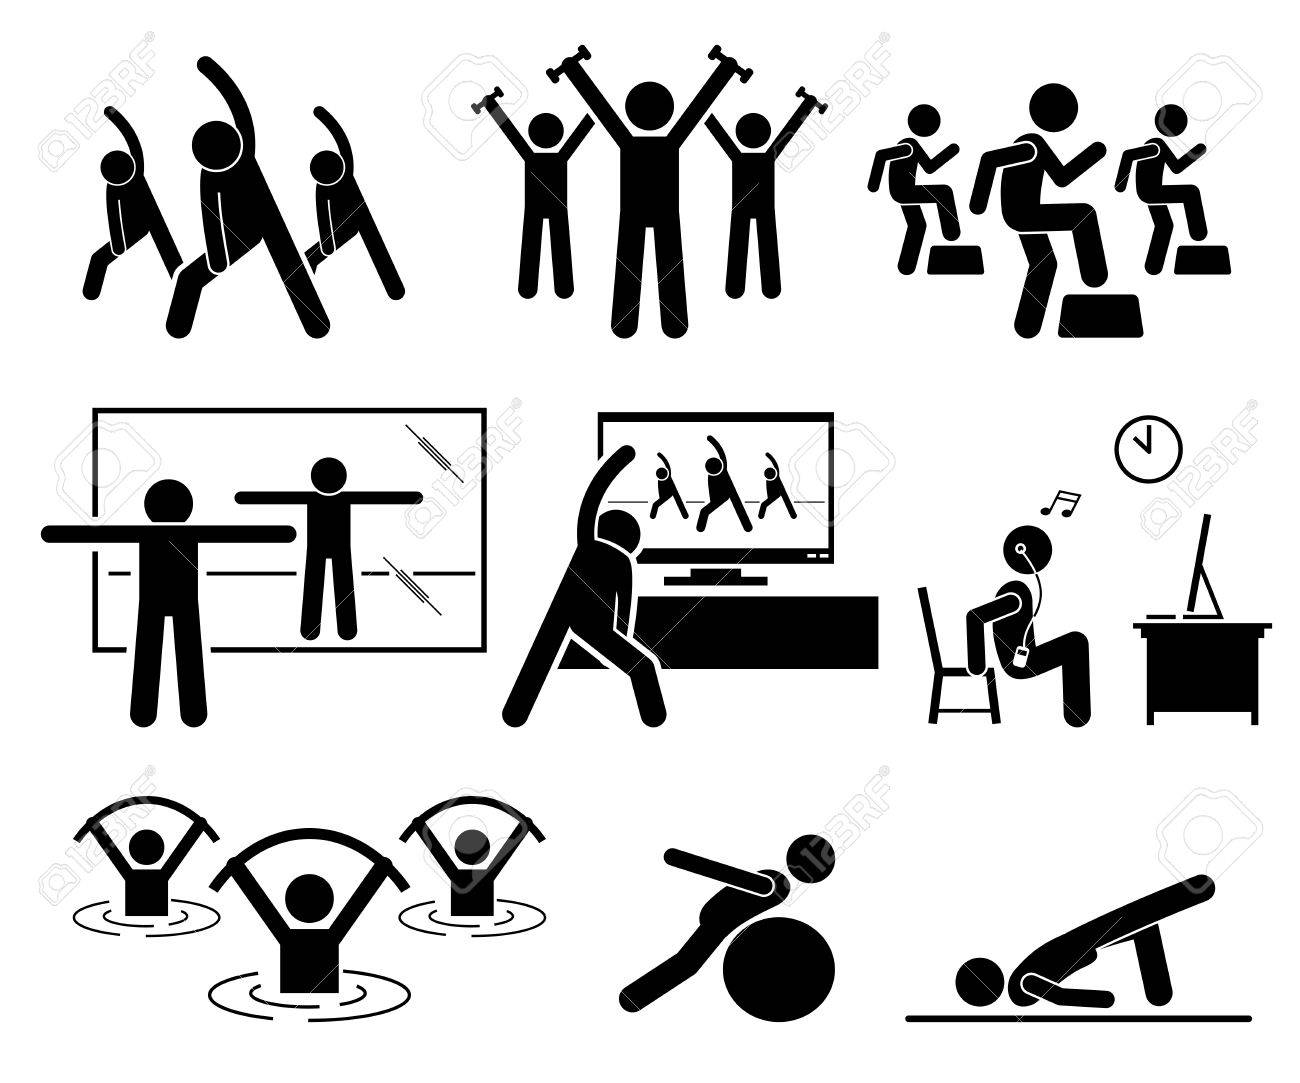 Aerobic class at gym room with instructor. Beginner learning aerobic at home by watching TV and Internet video. Aqua aerobic exercise at swimming pool. Illustrations in stick figures pictogram. - 73347949